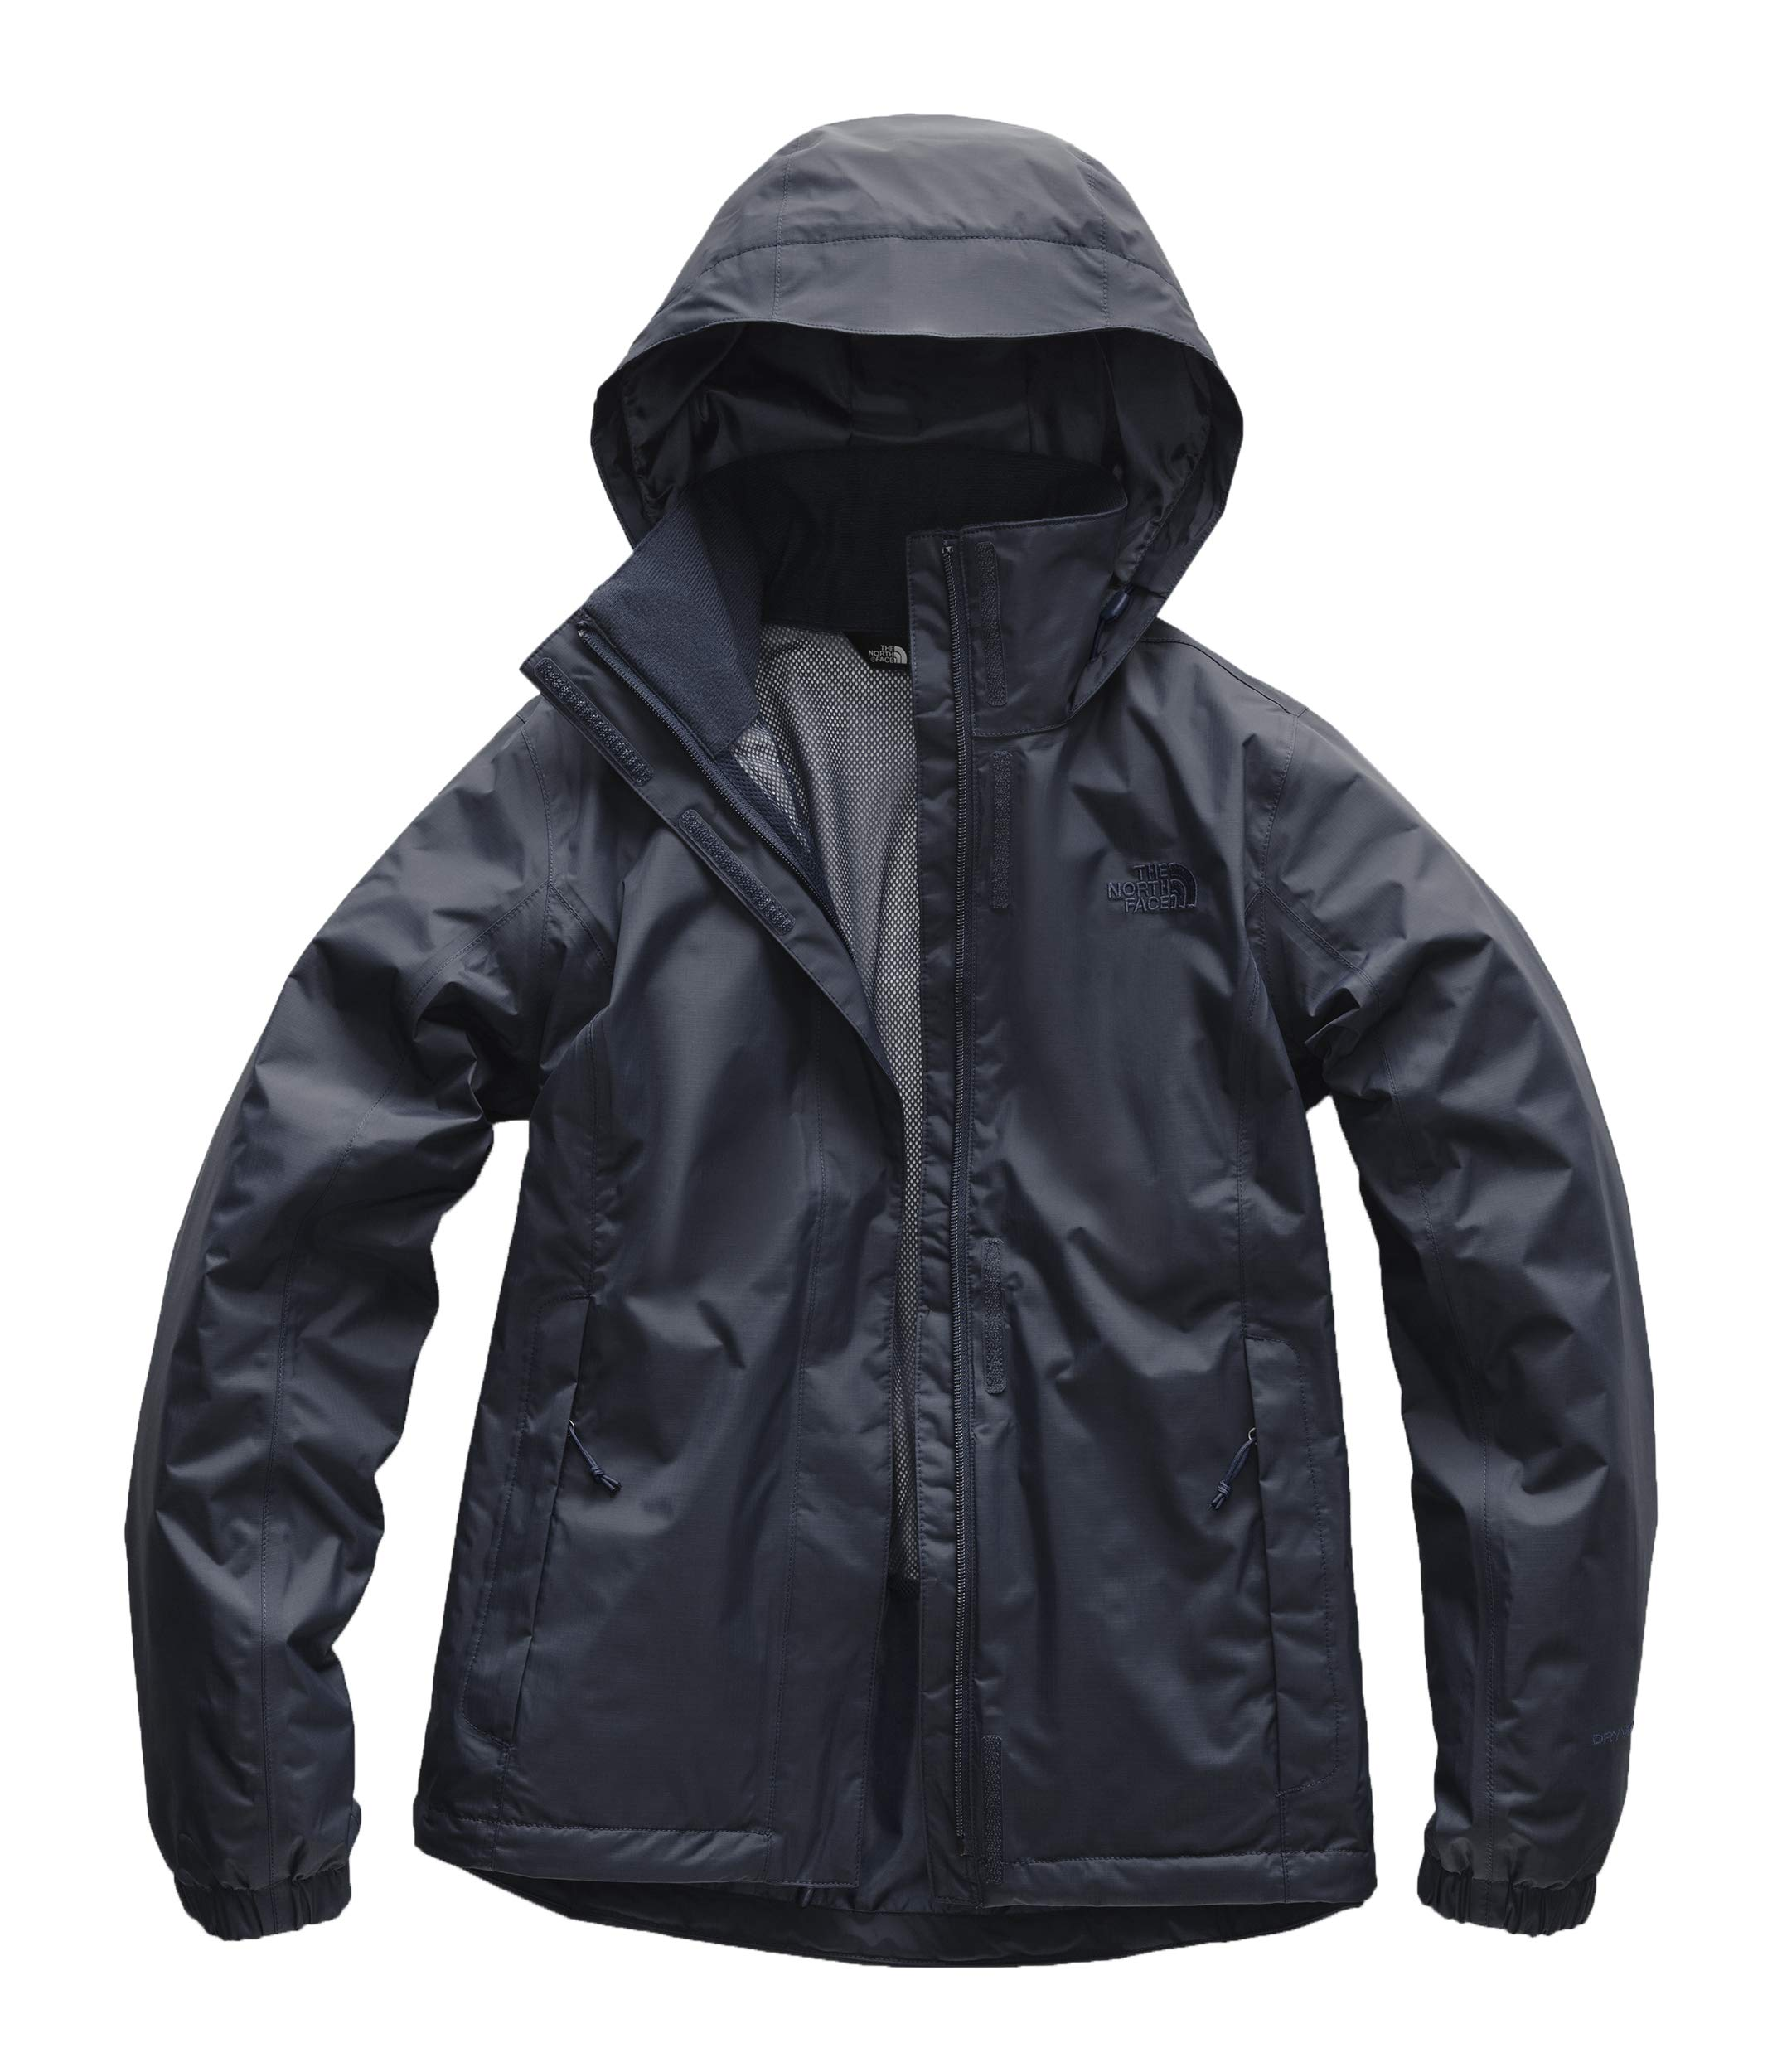 The North Face Women's Resolve 2 Jacket, Urban Navy, X-Large